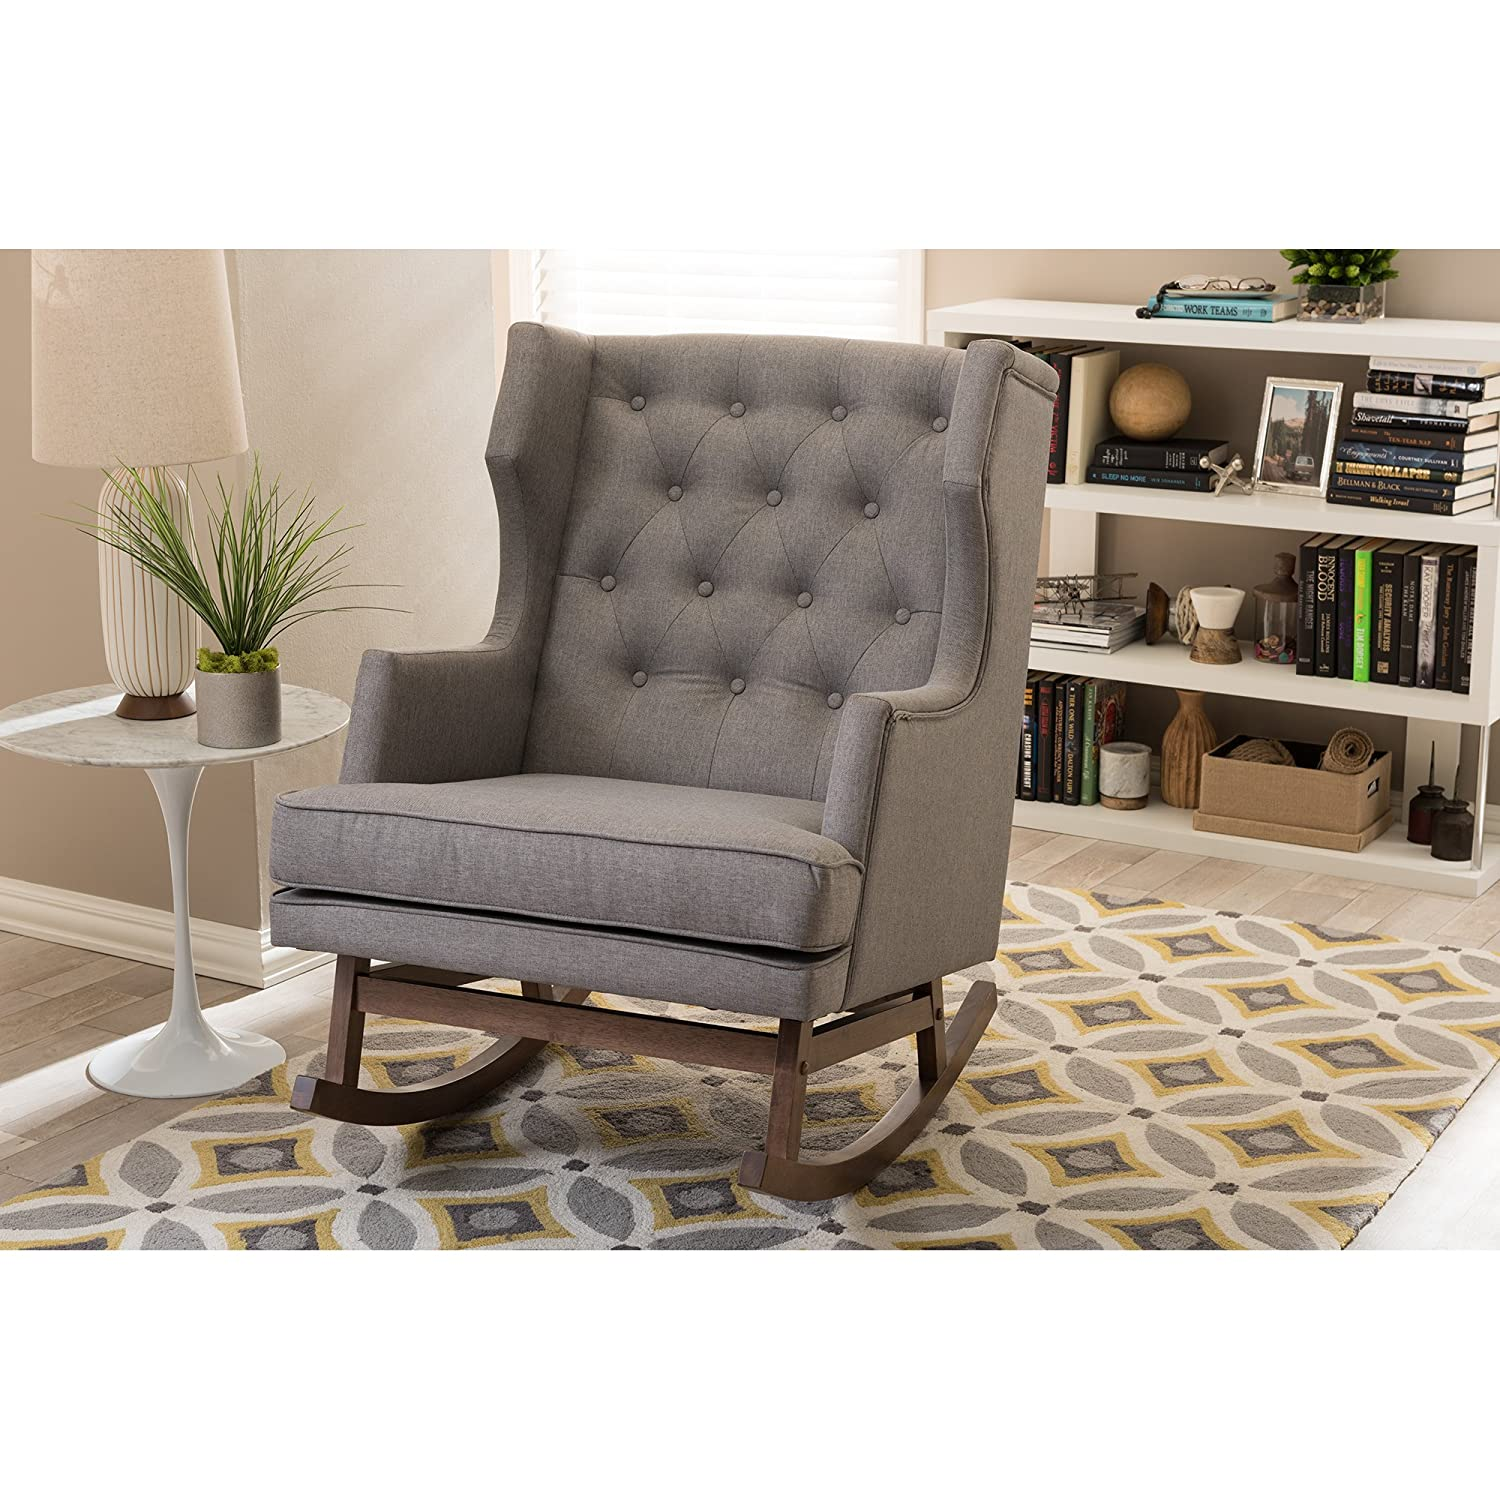 Mid century wood rocking chair - Amazon Com Baxton Studio Iona Mid Century Retro Modern Fabric Upholstered Button Tufted Wingback Rocking Chair Grey Kitchen Dining